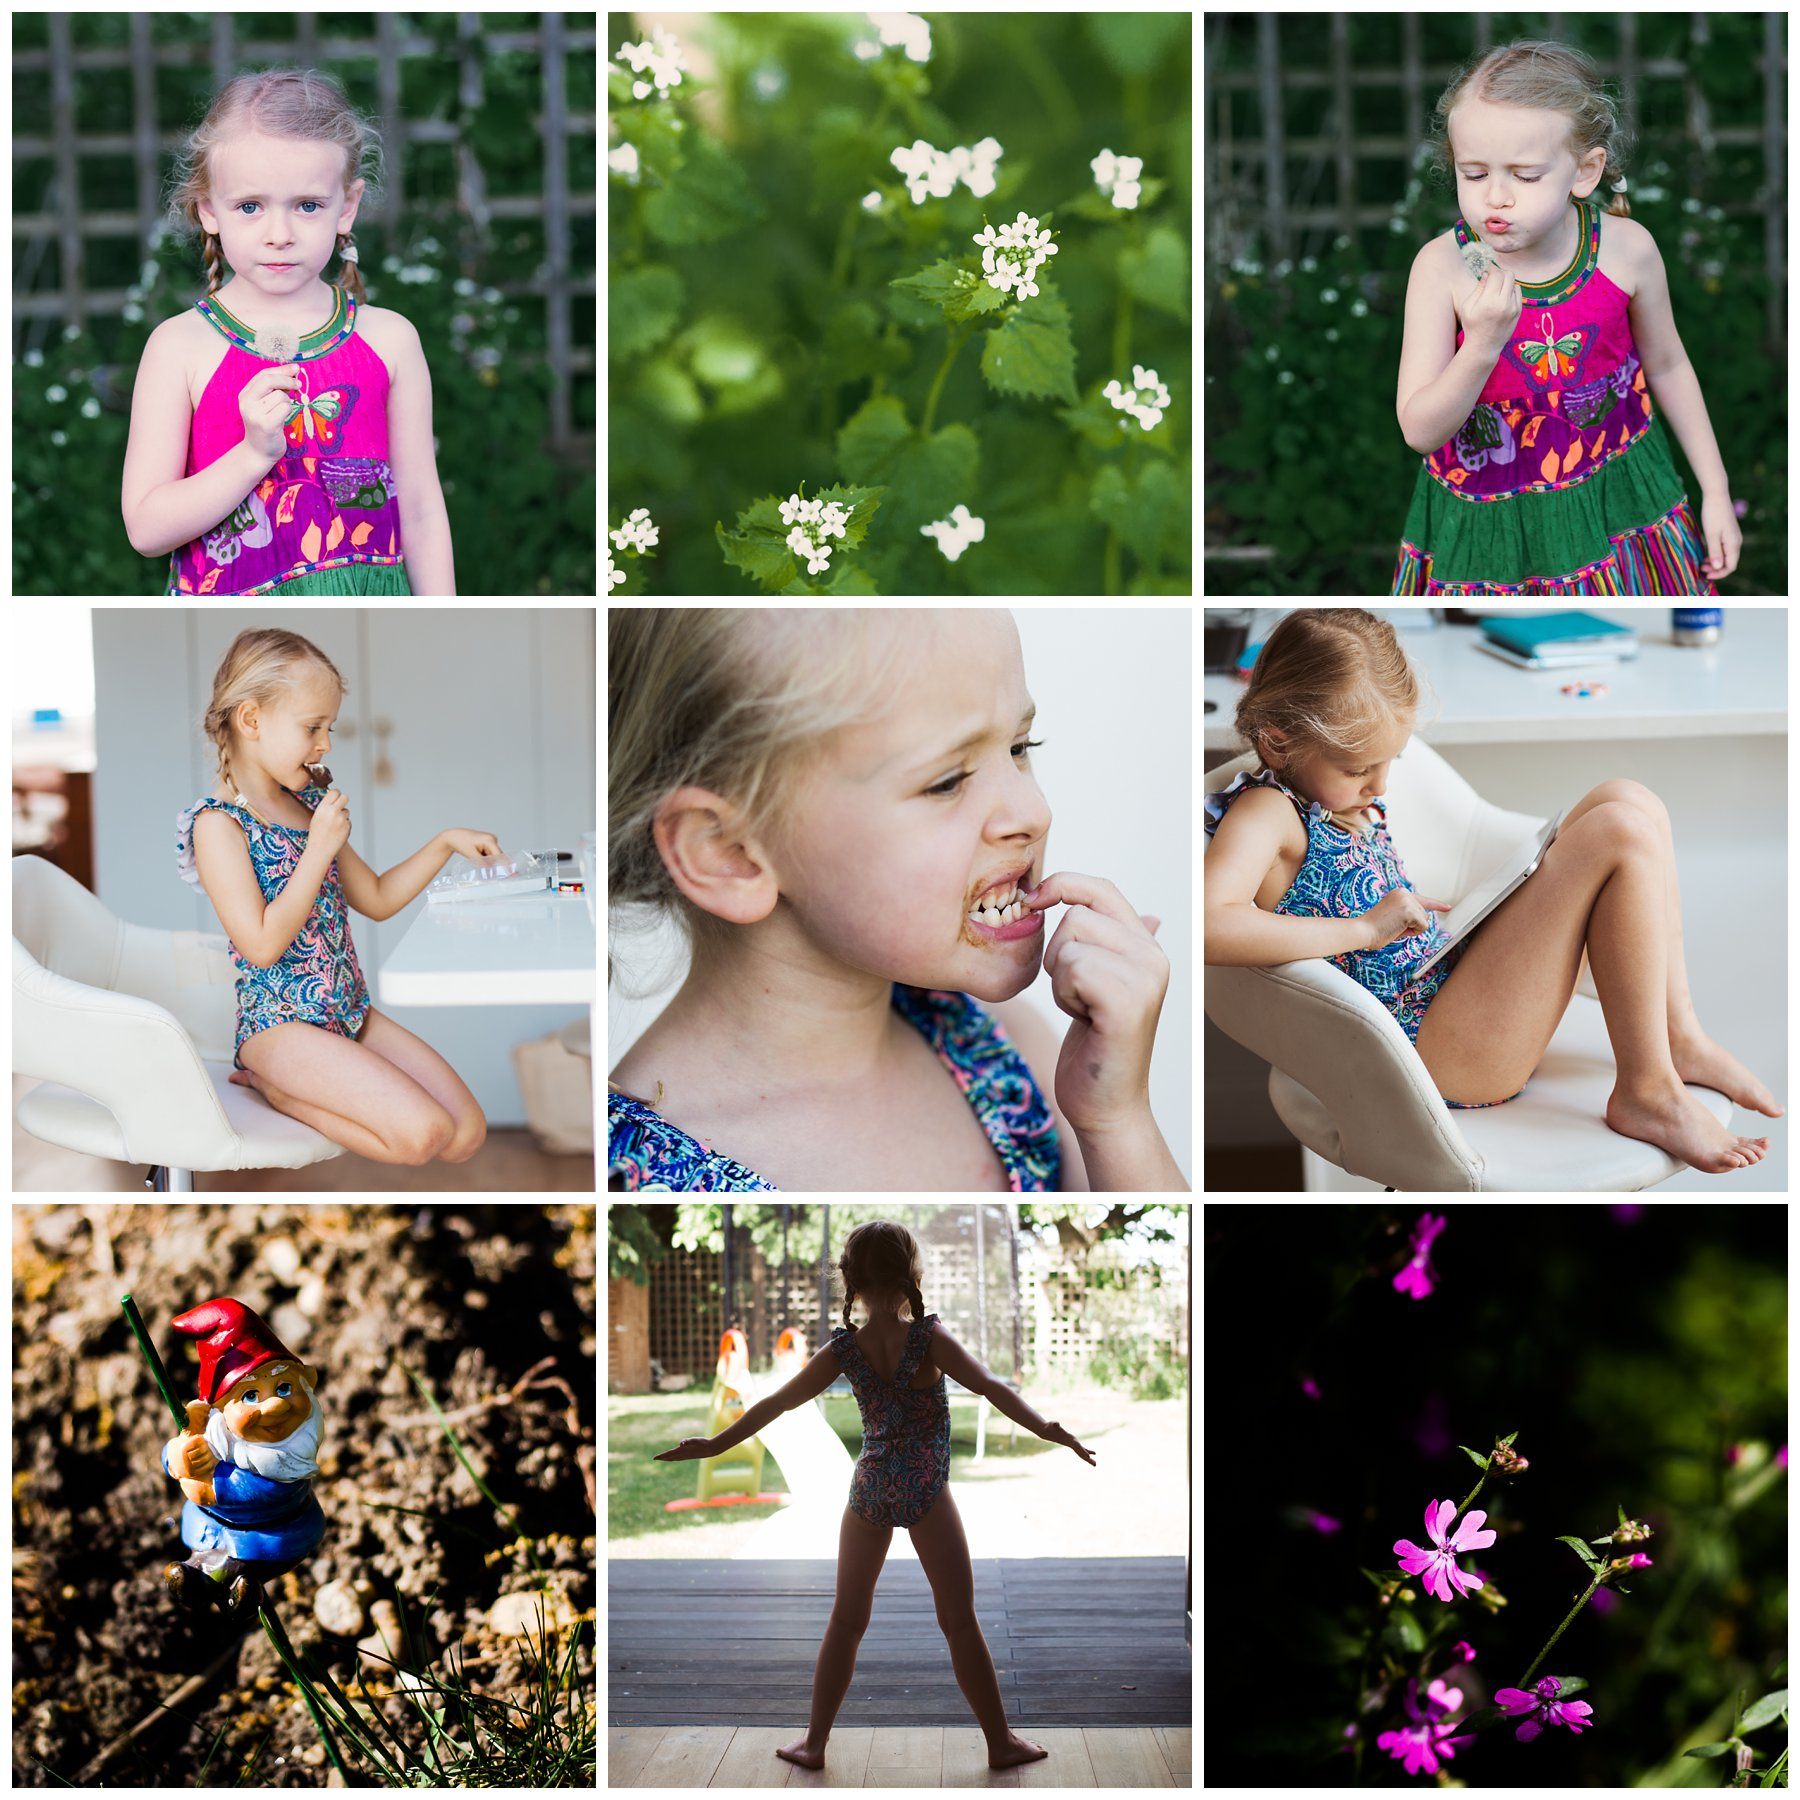 Selection of family photography